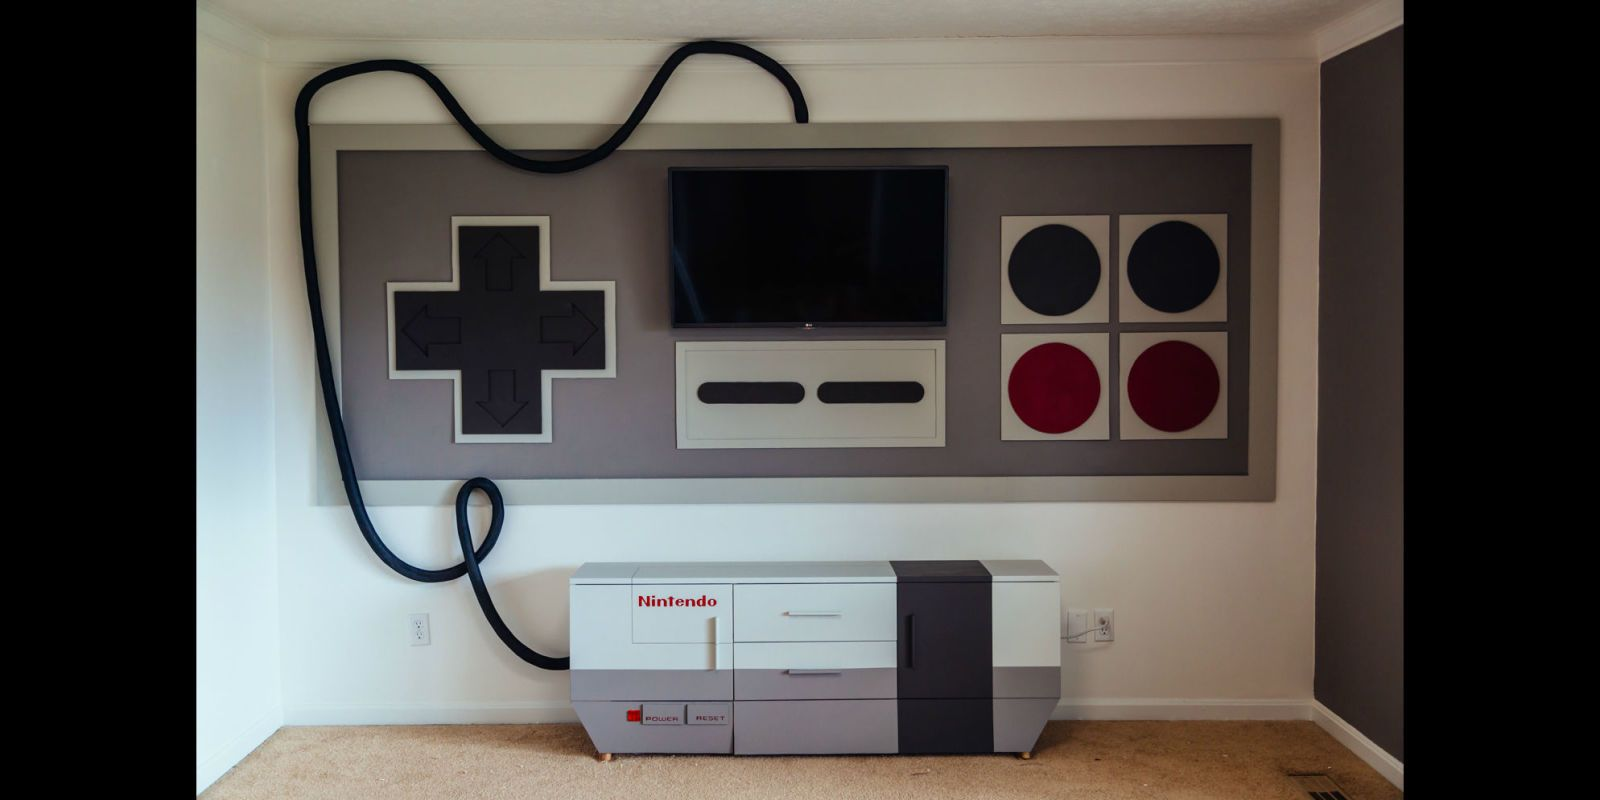 Game Room Ideas: Turn Your Entire Wall Into a Giant Nintendo